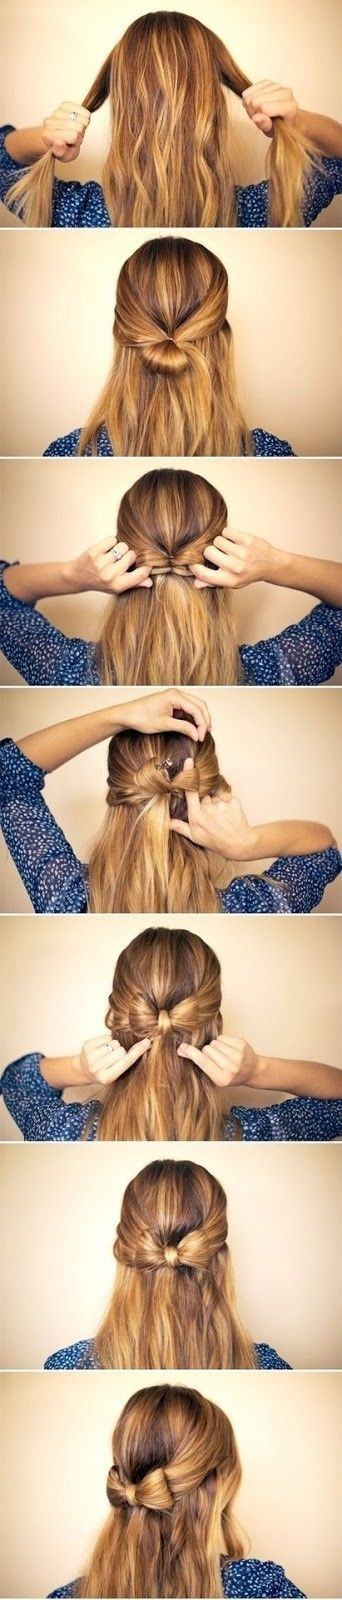 Learn to DIY a hair bow #diy #hair